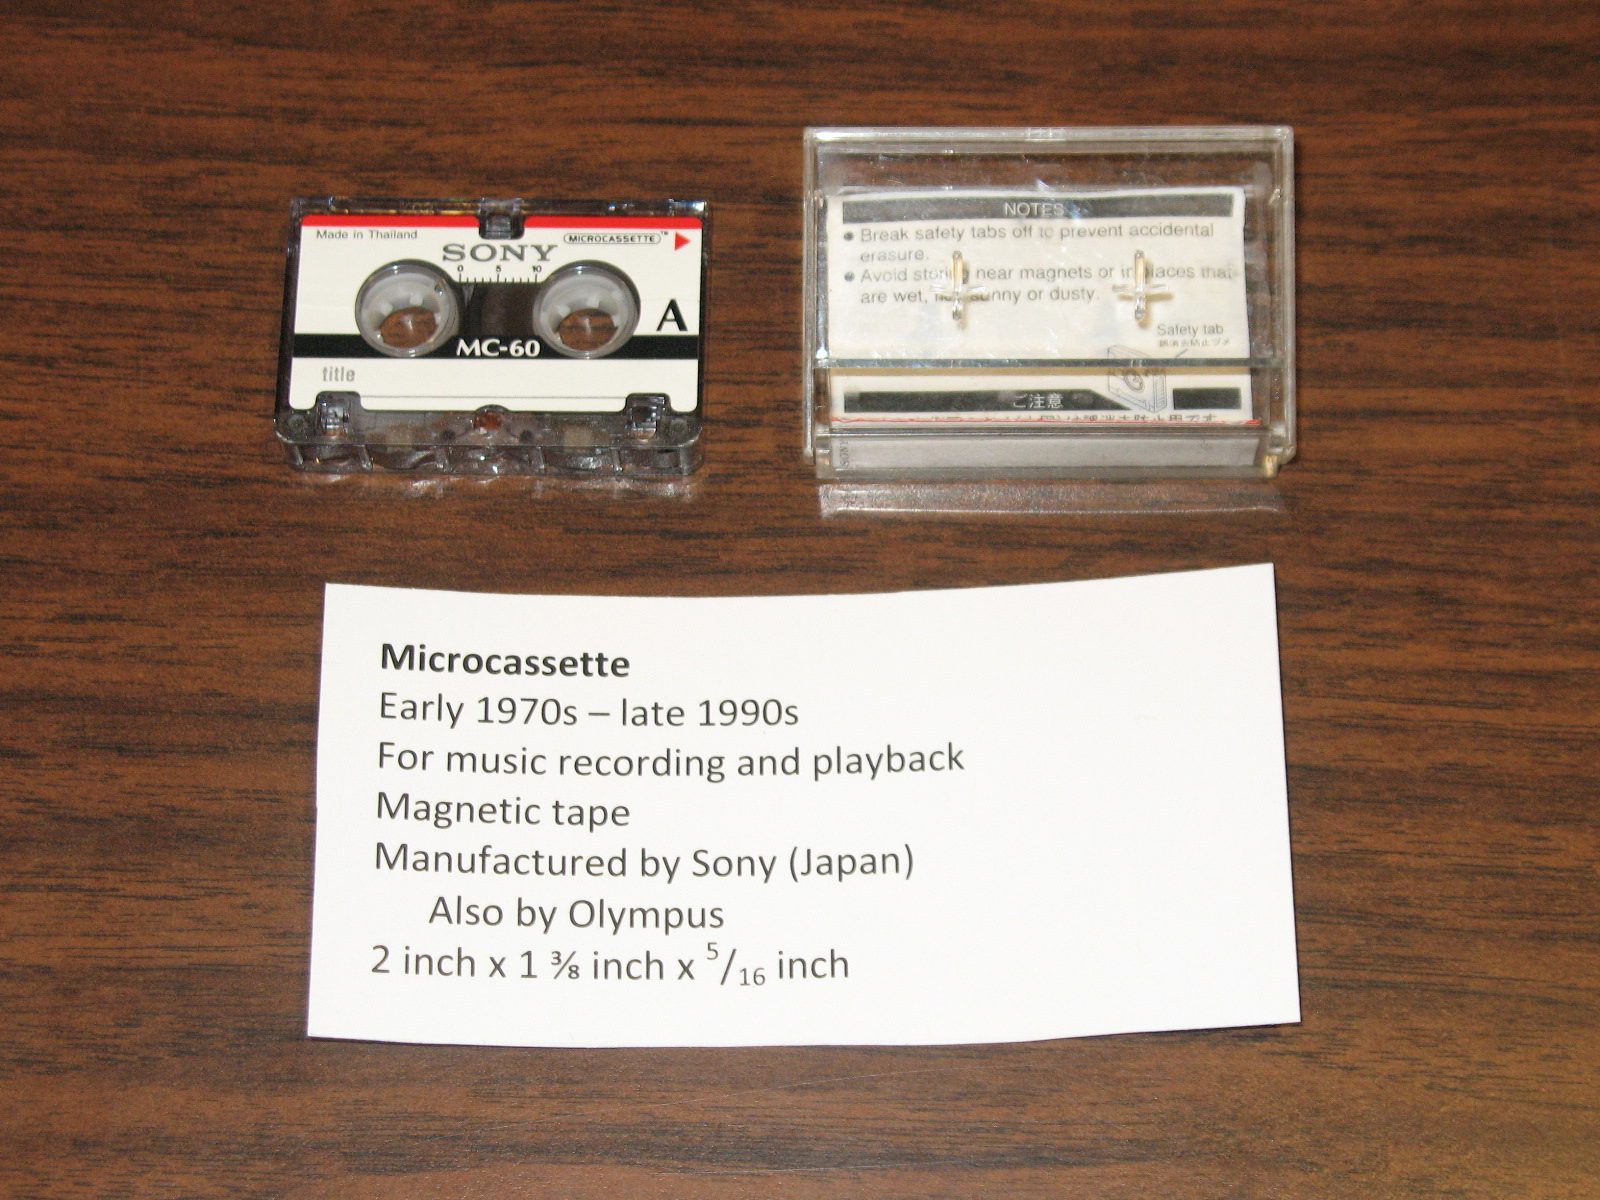 File:Microcassette - Government & Heritage Library, State